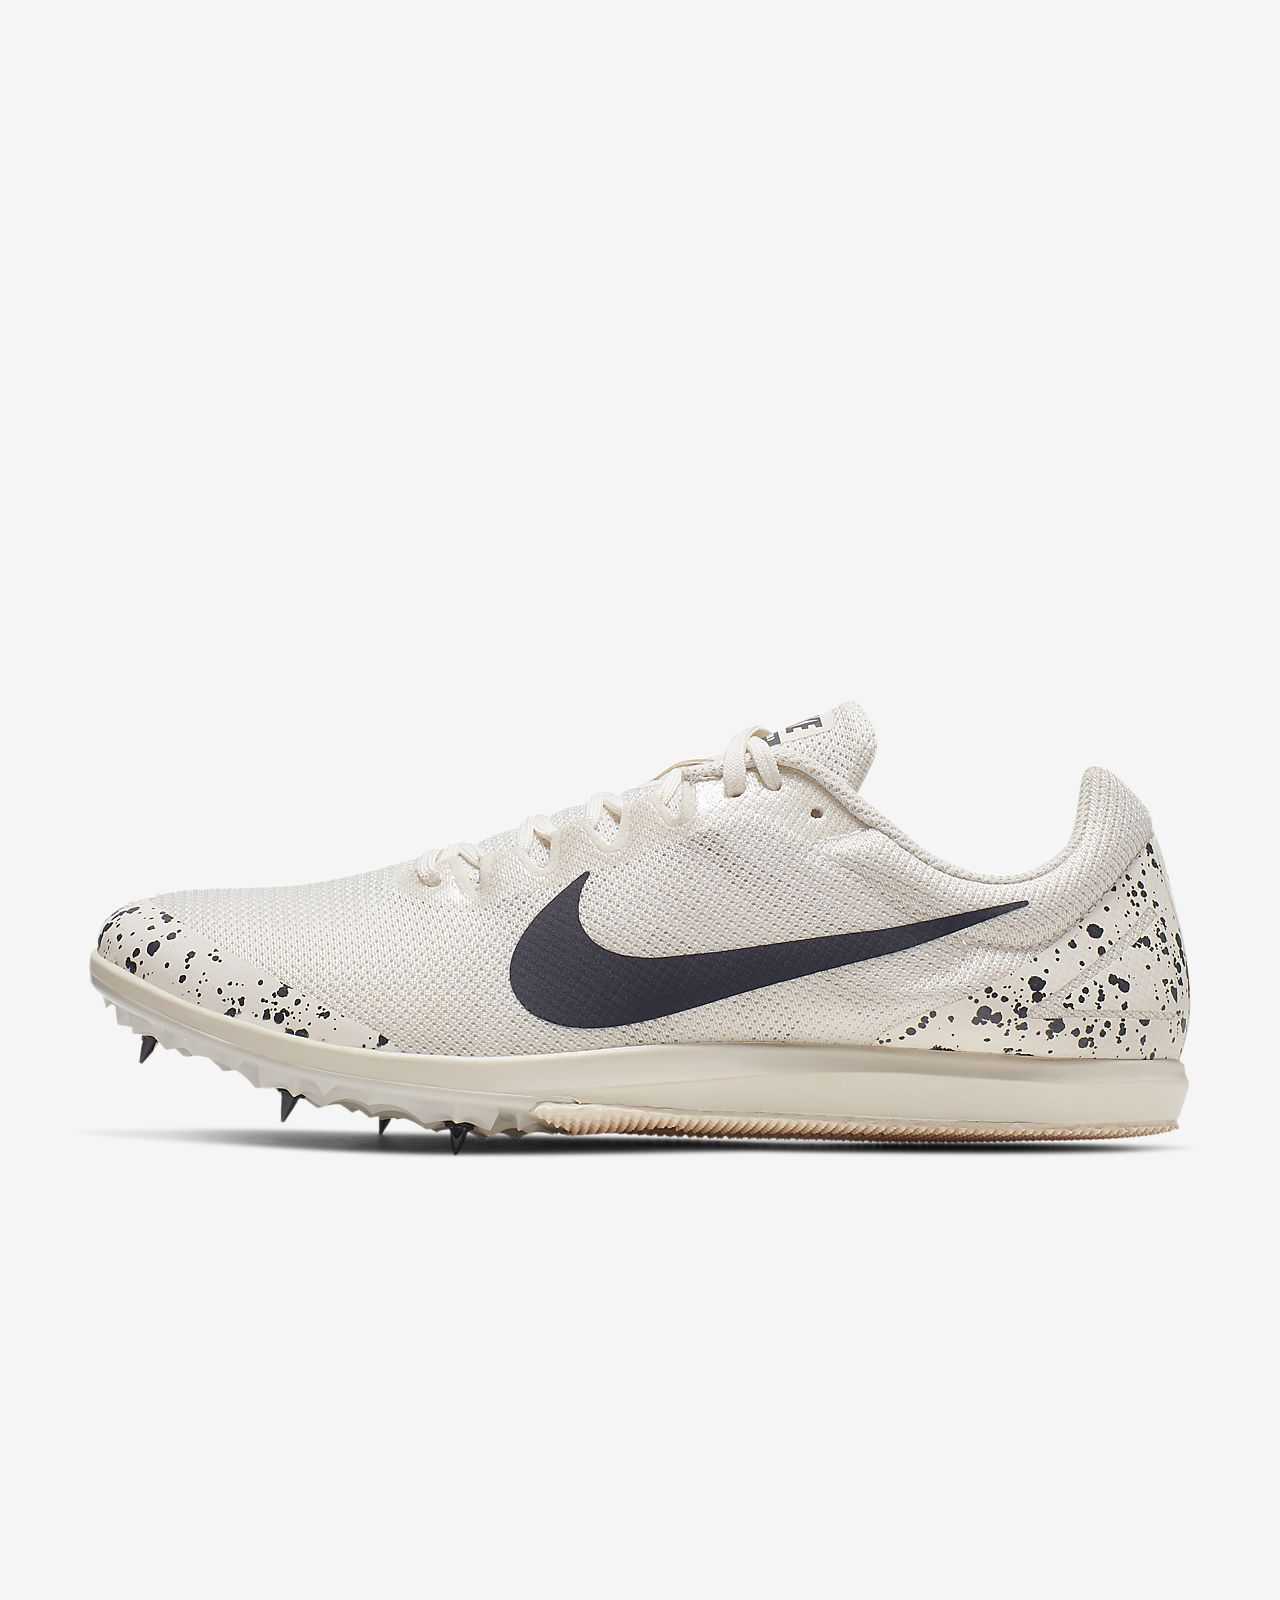 5c9c6d0fcf543 Nike Zoom Rival D 10 Unisex Track Spike. Nike.com GB